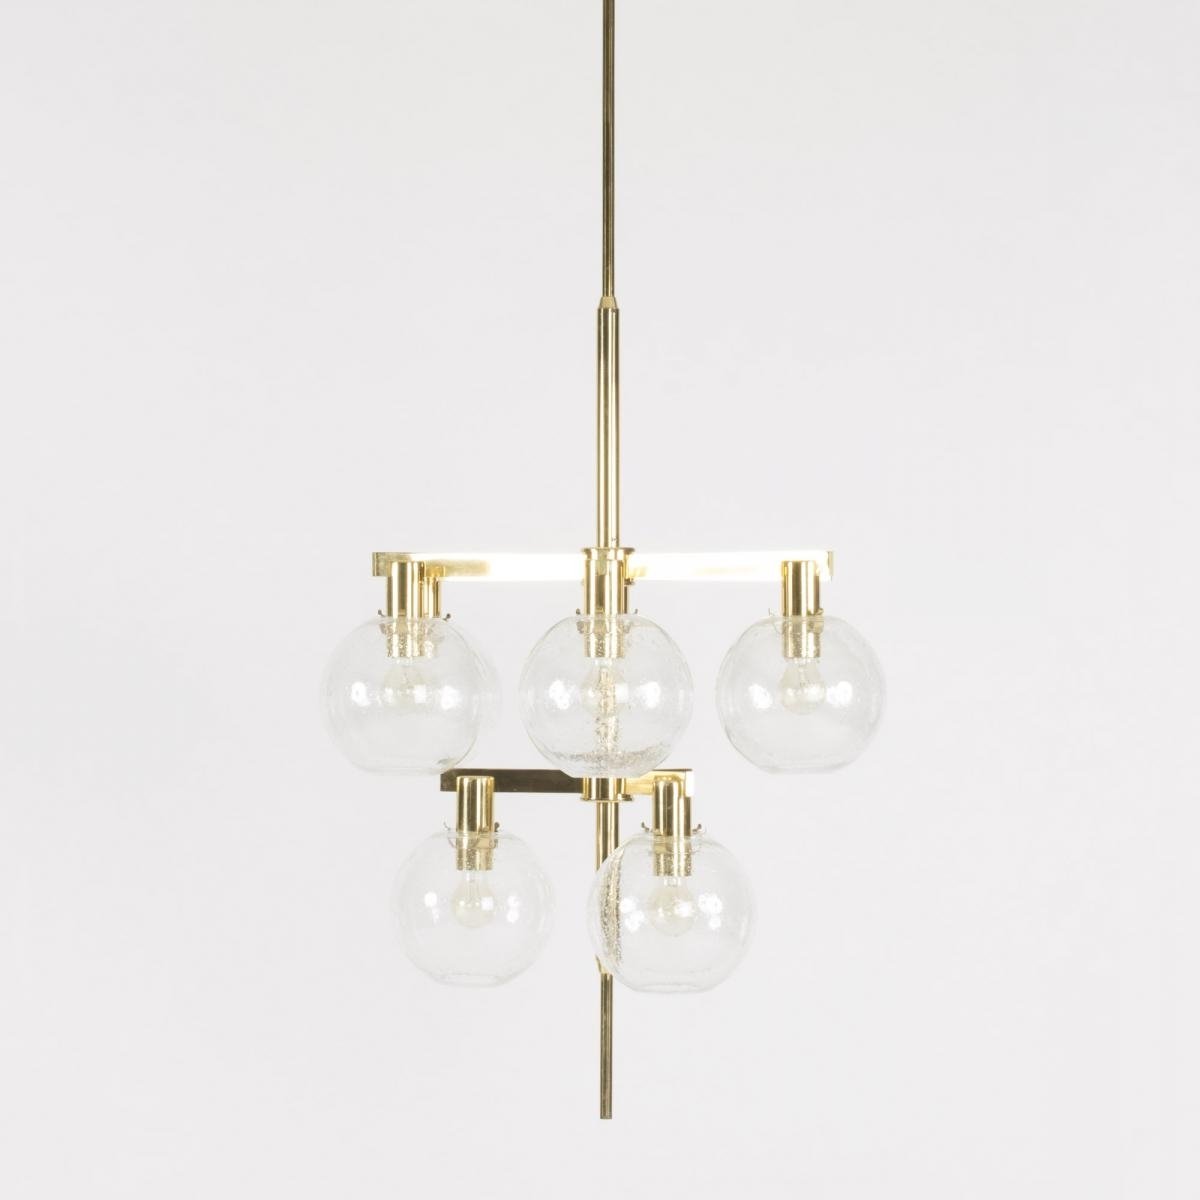 Brass And Glass Chandelier Regarding Most Up To Date Brass And Glass Chandelier From Hans Agne Jakobsson, 1960S For Sale (View 6 of 20)